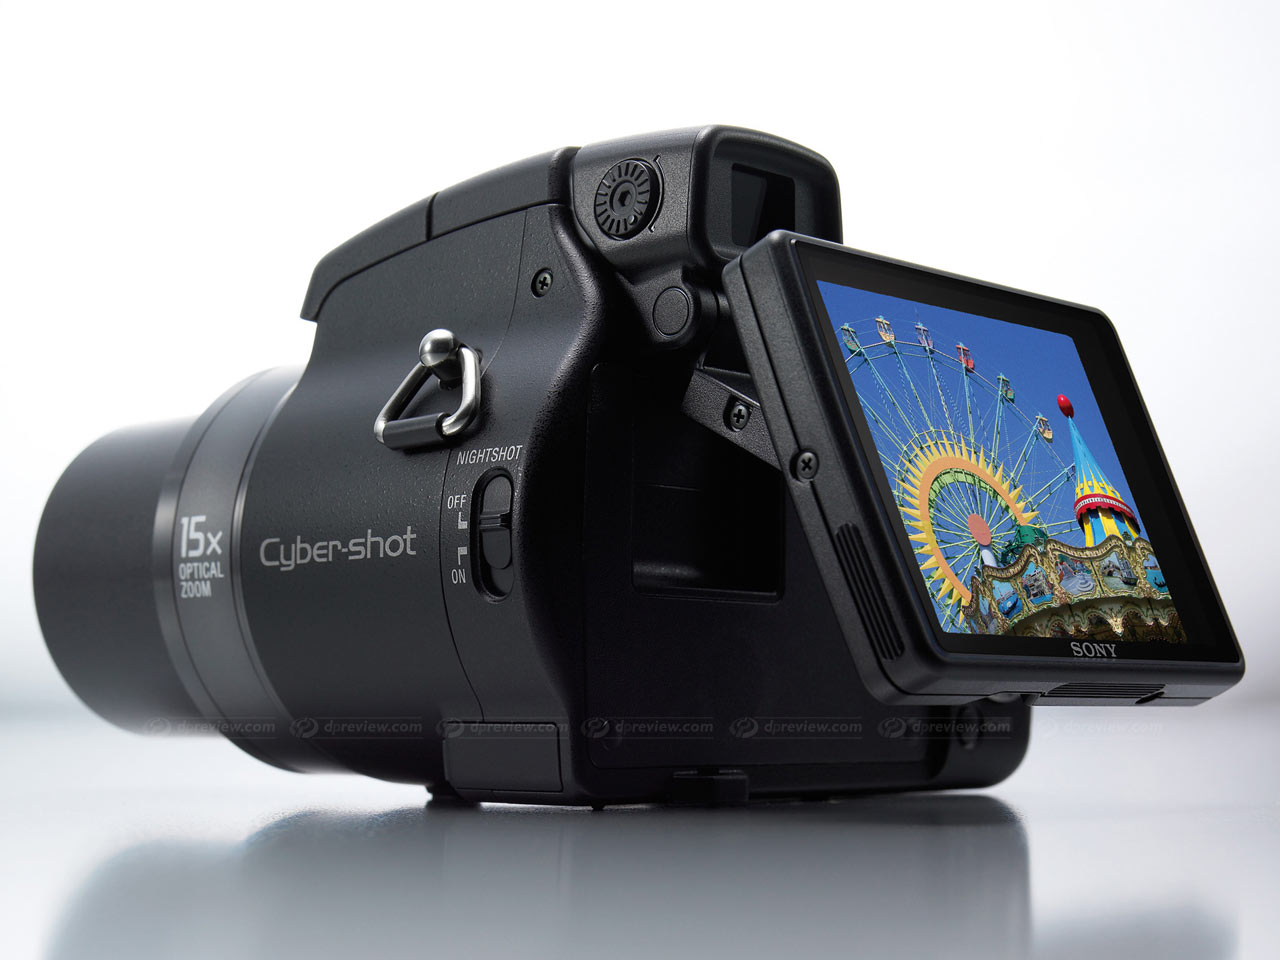 Sony Cyber Shot Dsc H9 And Dsc H7 Digital Photography Review